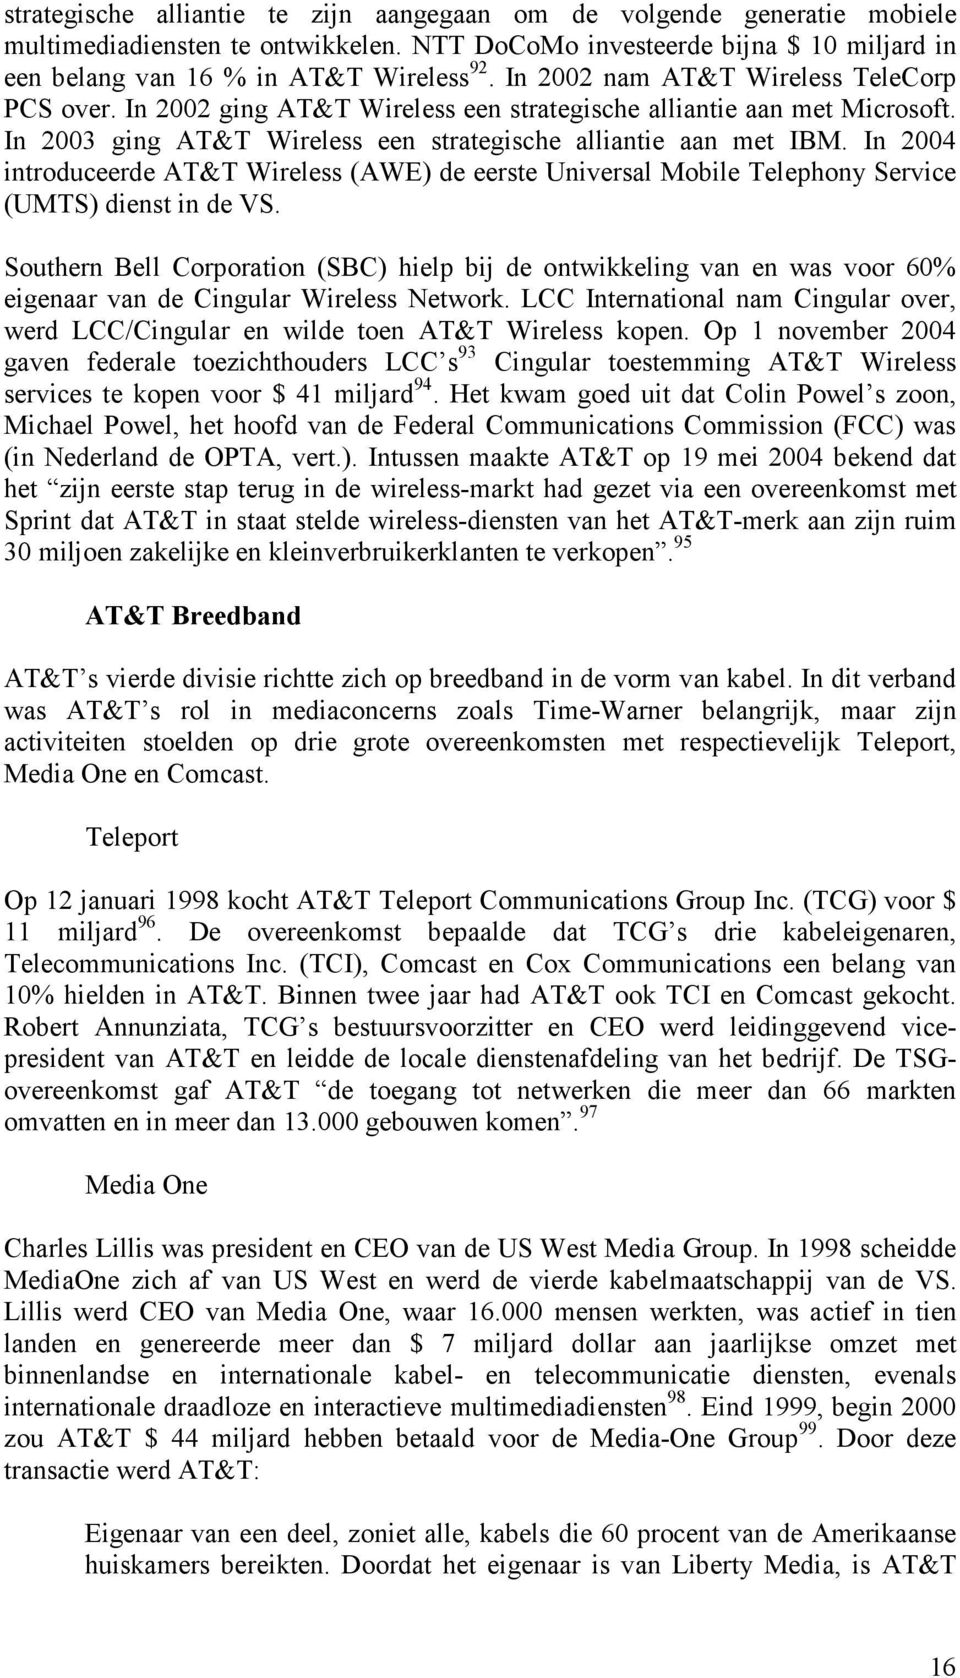 In 2004 introduceerde AT&T Wireless (AWE) de eerste Universal Mobile Telephony Service (UMTS) dienst in de VS.